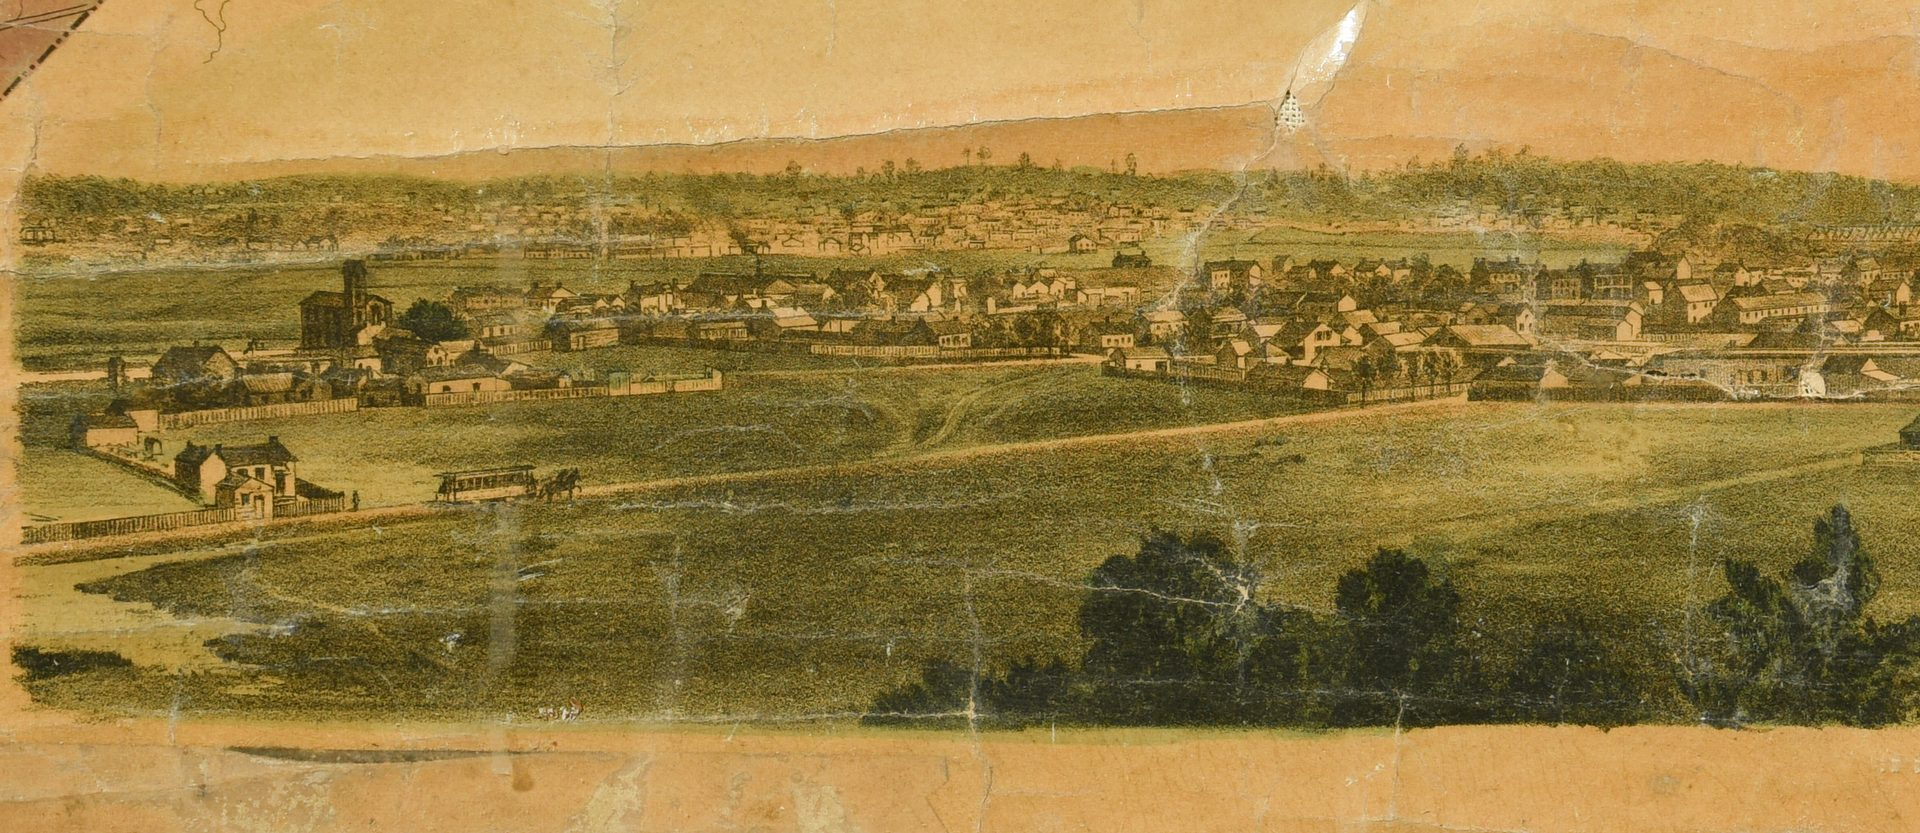 Lot 260: 1871 Foster Map of Davidson County